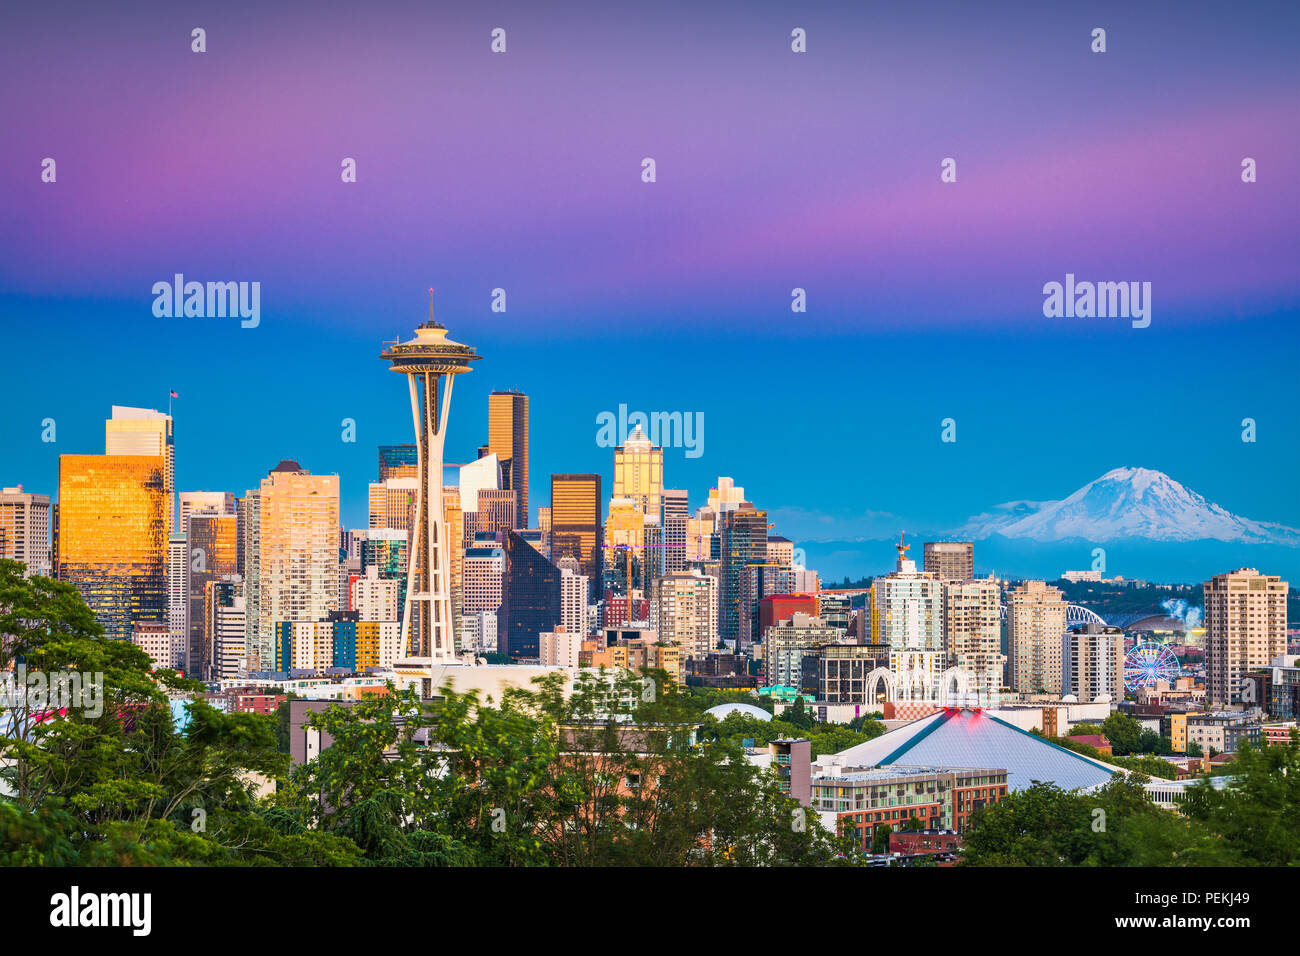 Seattle, Washington, USA downtown skyline at night with Mt. Rainier. - Stock Image